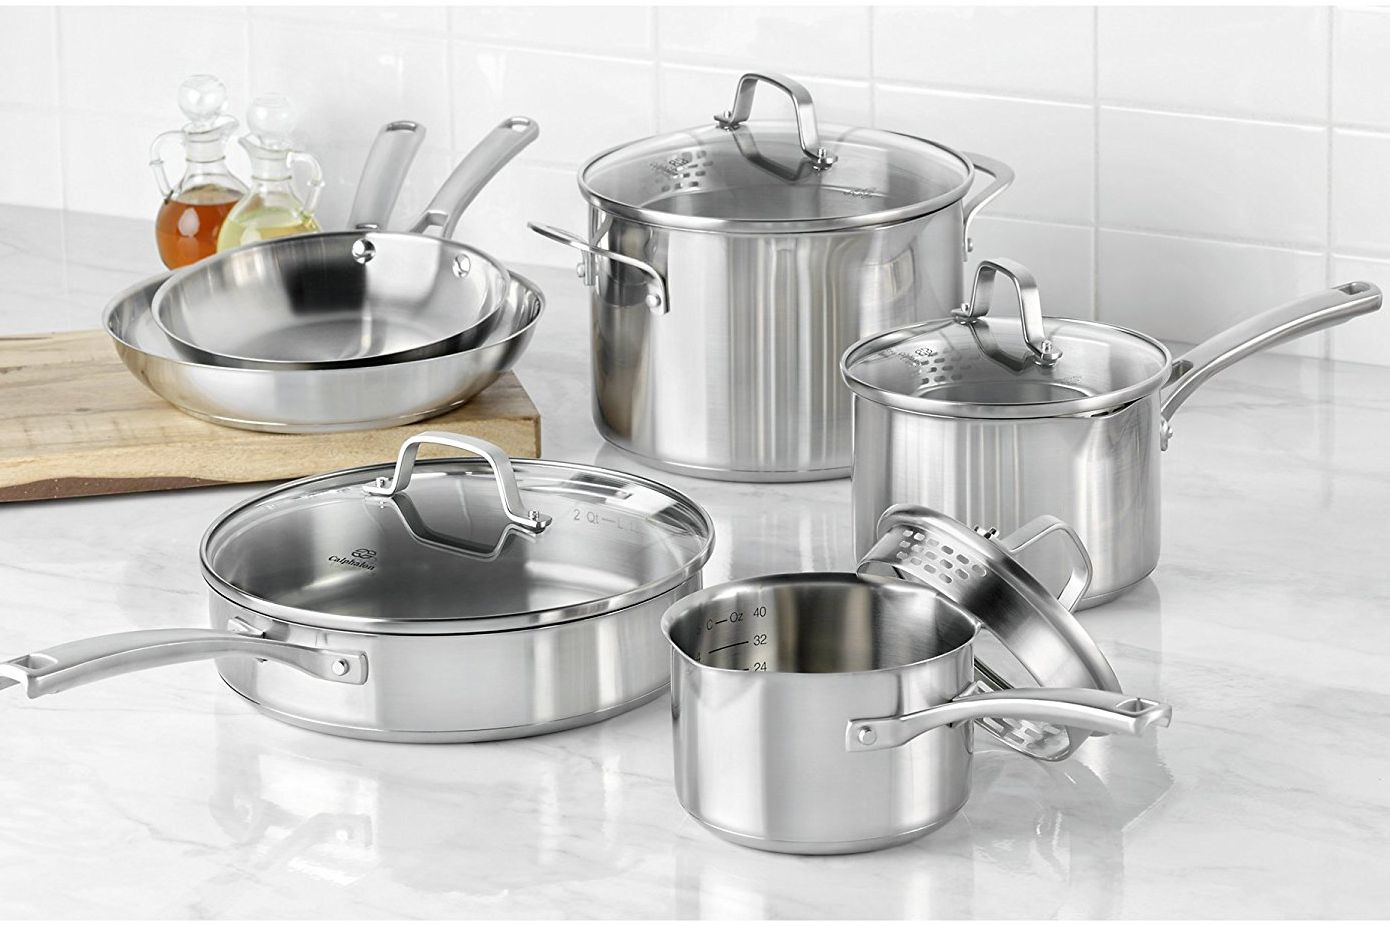 Calphalon Classic Stainless Steel Cookware Set, 10 Piece